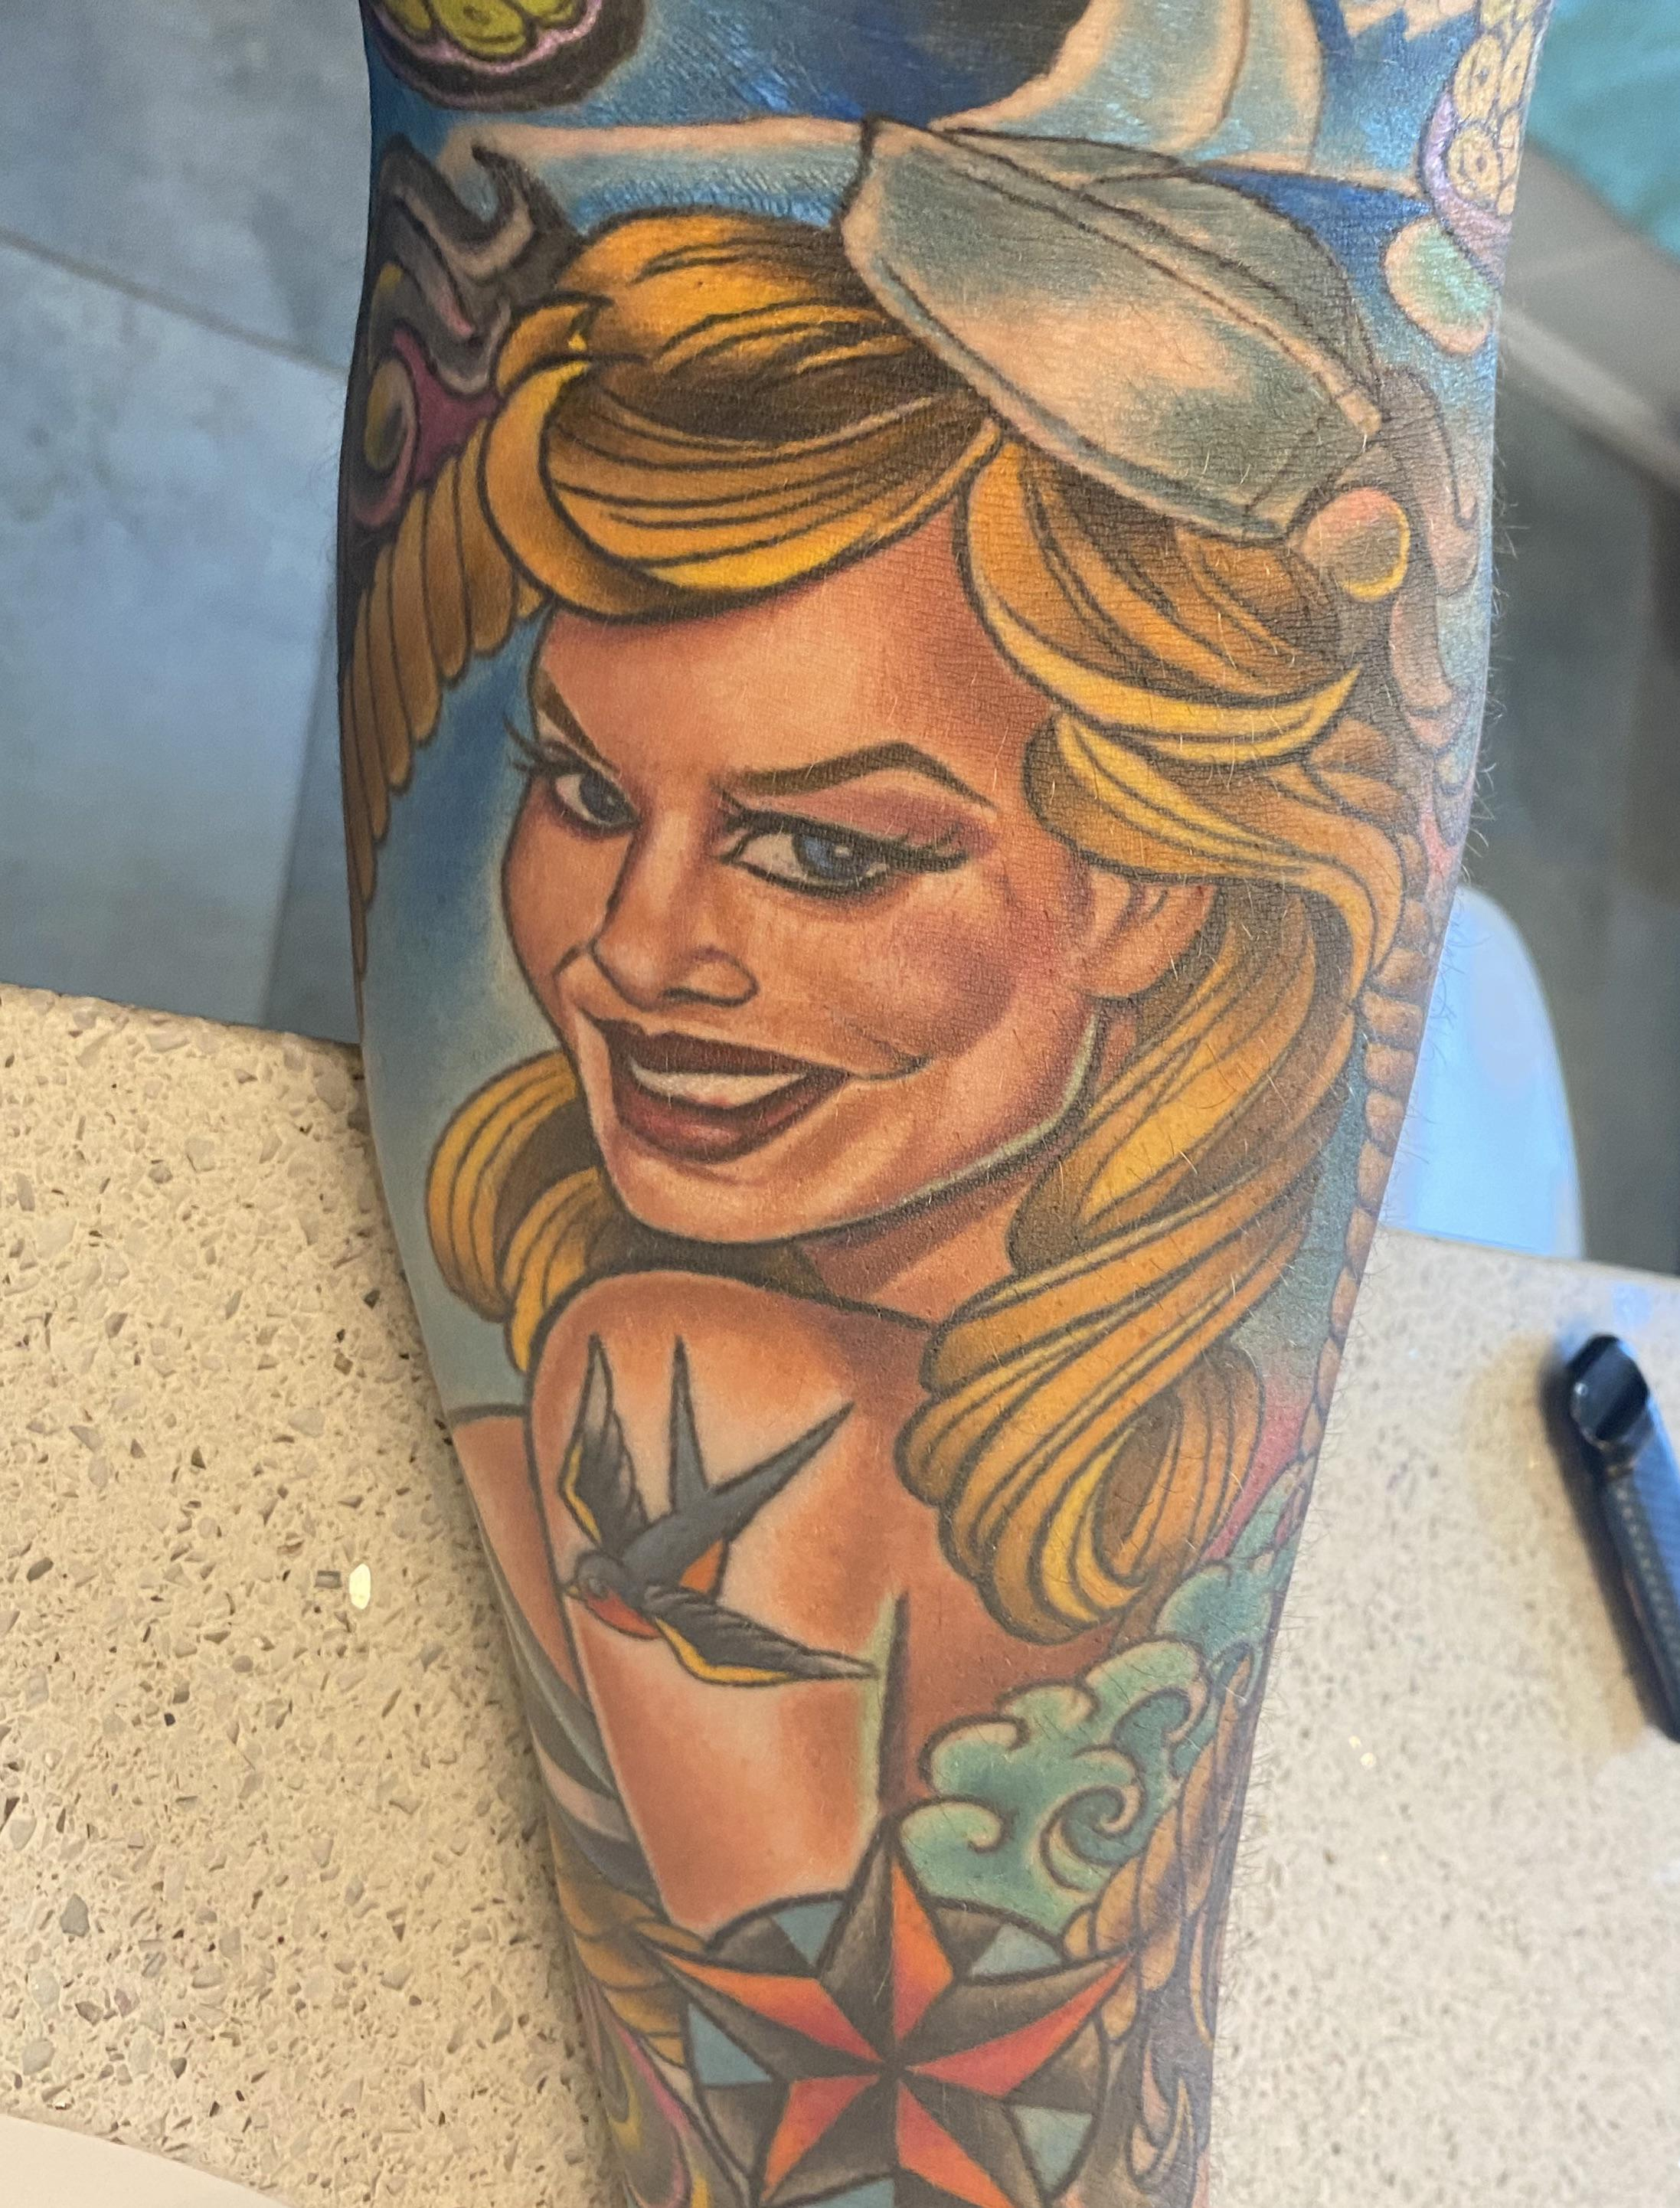 Hope Gallery Tattoos : gallery, tattoos, Sailor, Capobianco, Gallery, Tattoos